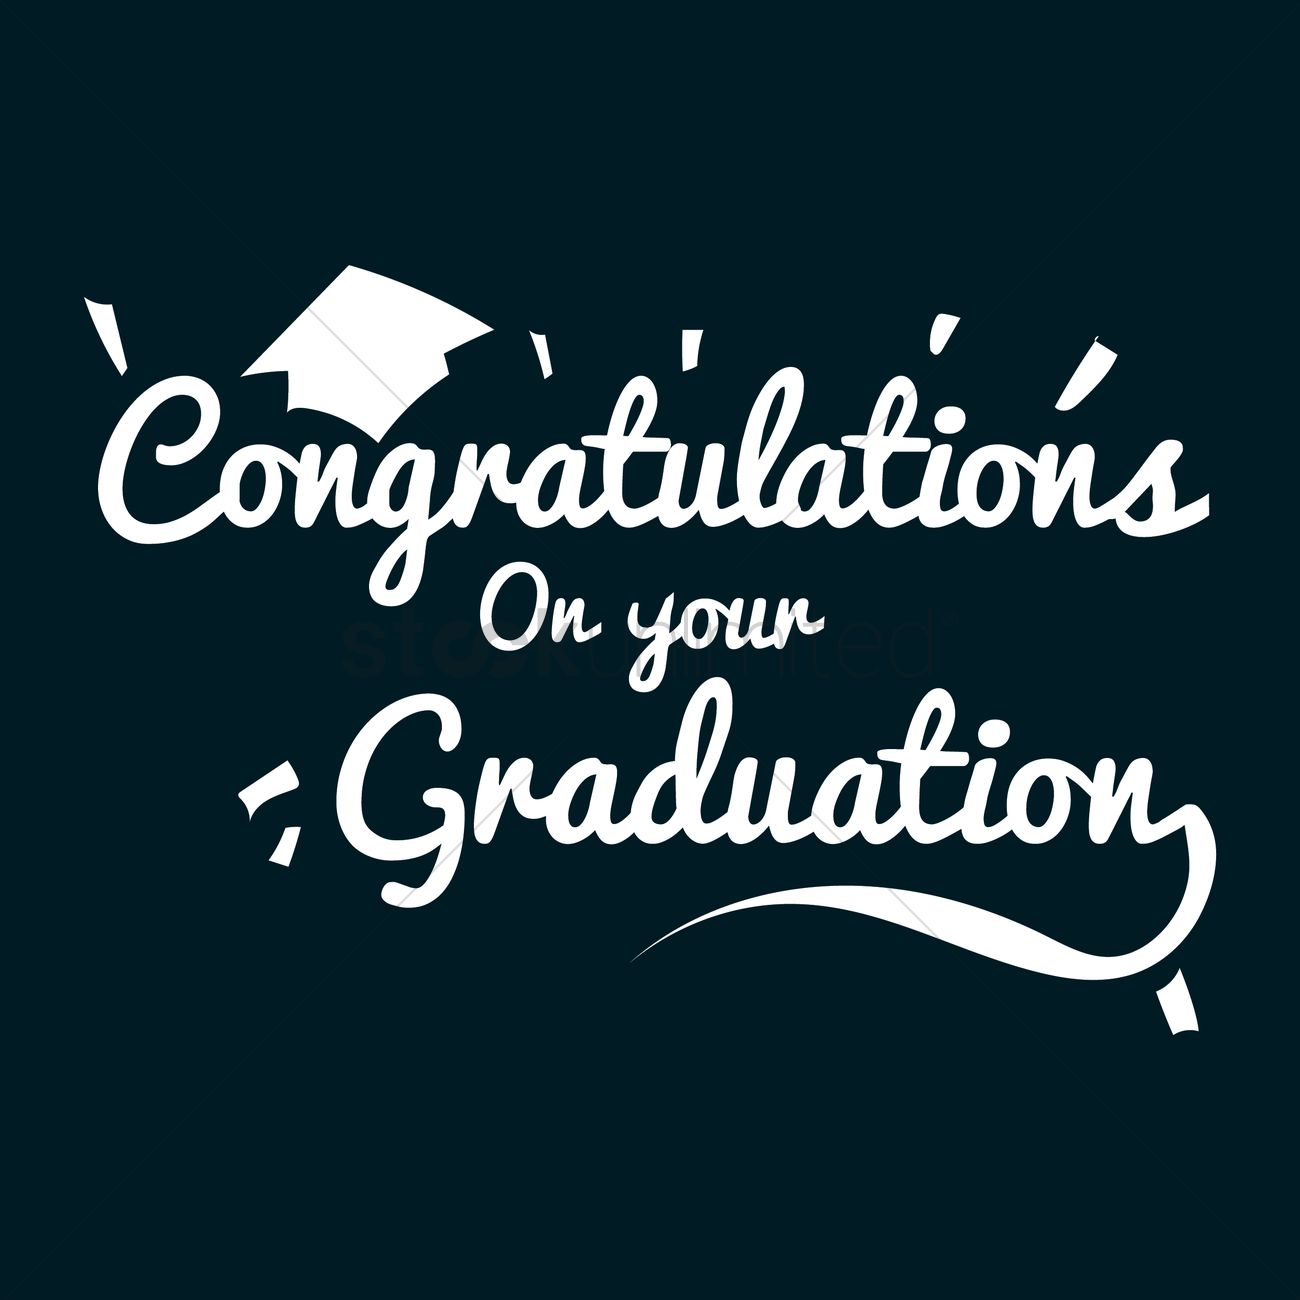 Congratulations Graduation Wishes